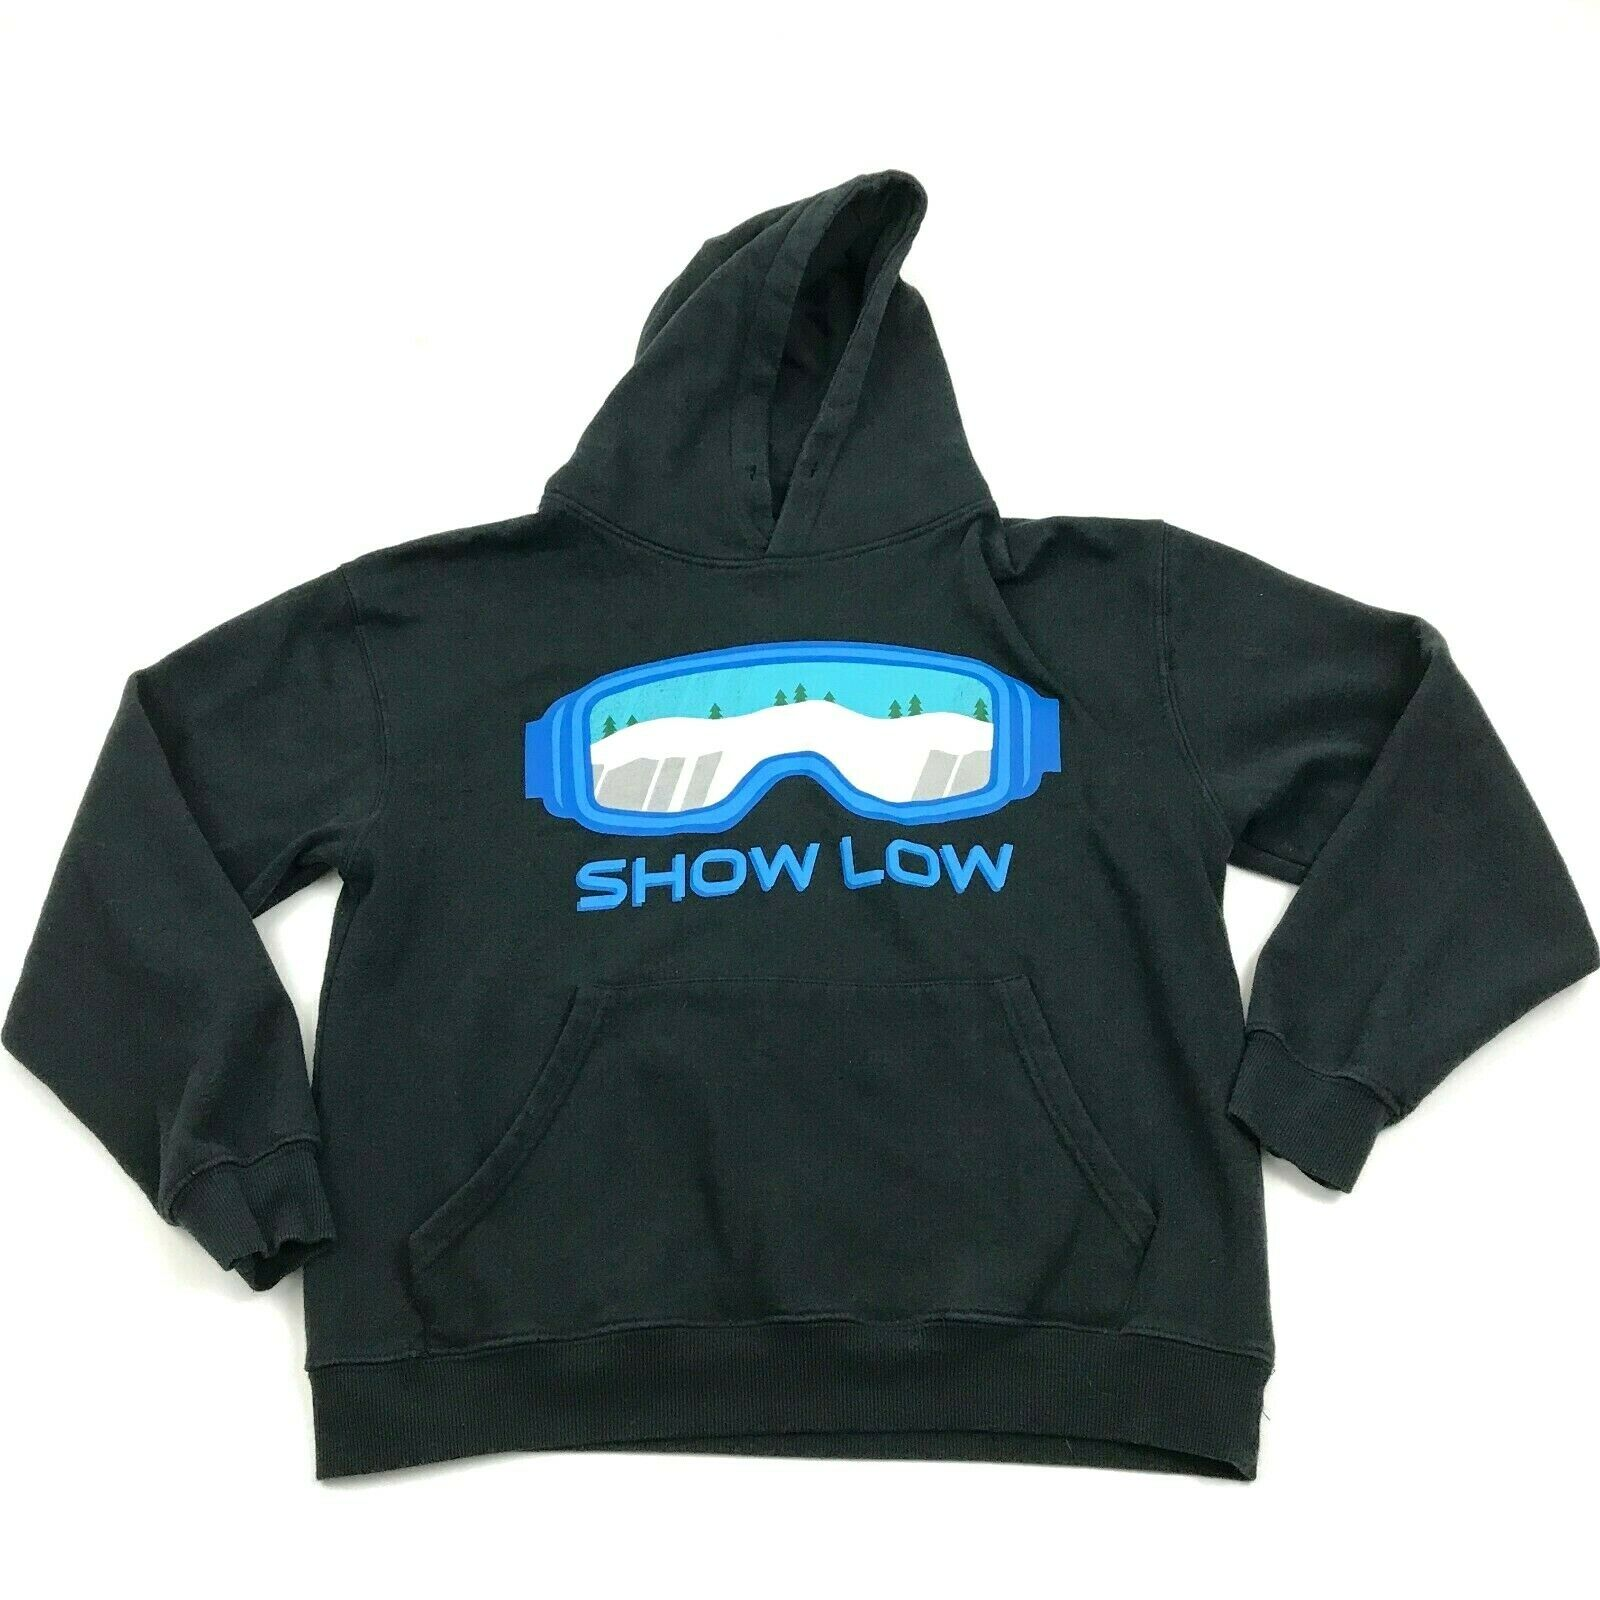 SHOW LOW Snow Hoodie Size Small S Black Sweatshirt Pullover Hooded Sweater Loose